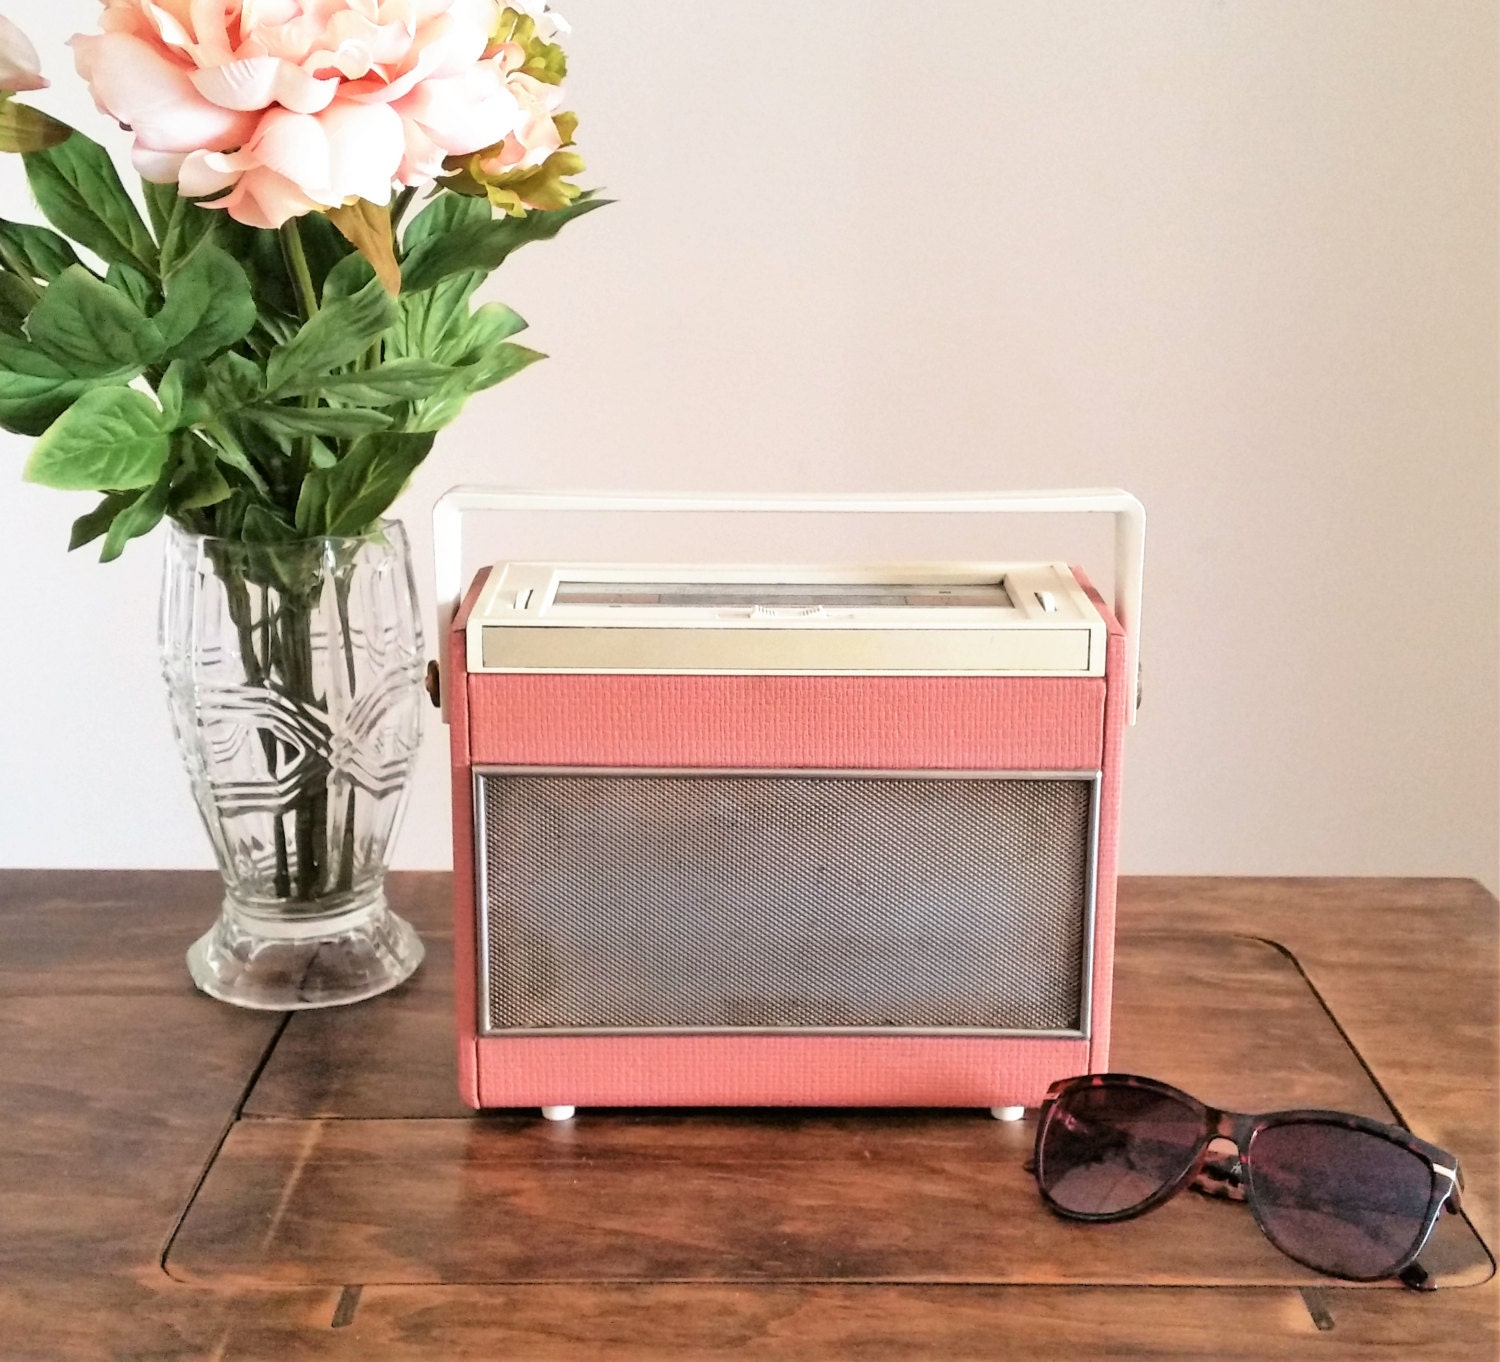 pink ferranti radio vintage 1940s 1950s radio small portable. Black Bedroom Furniture Sets. Home Design Ideas